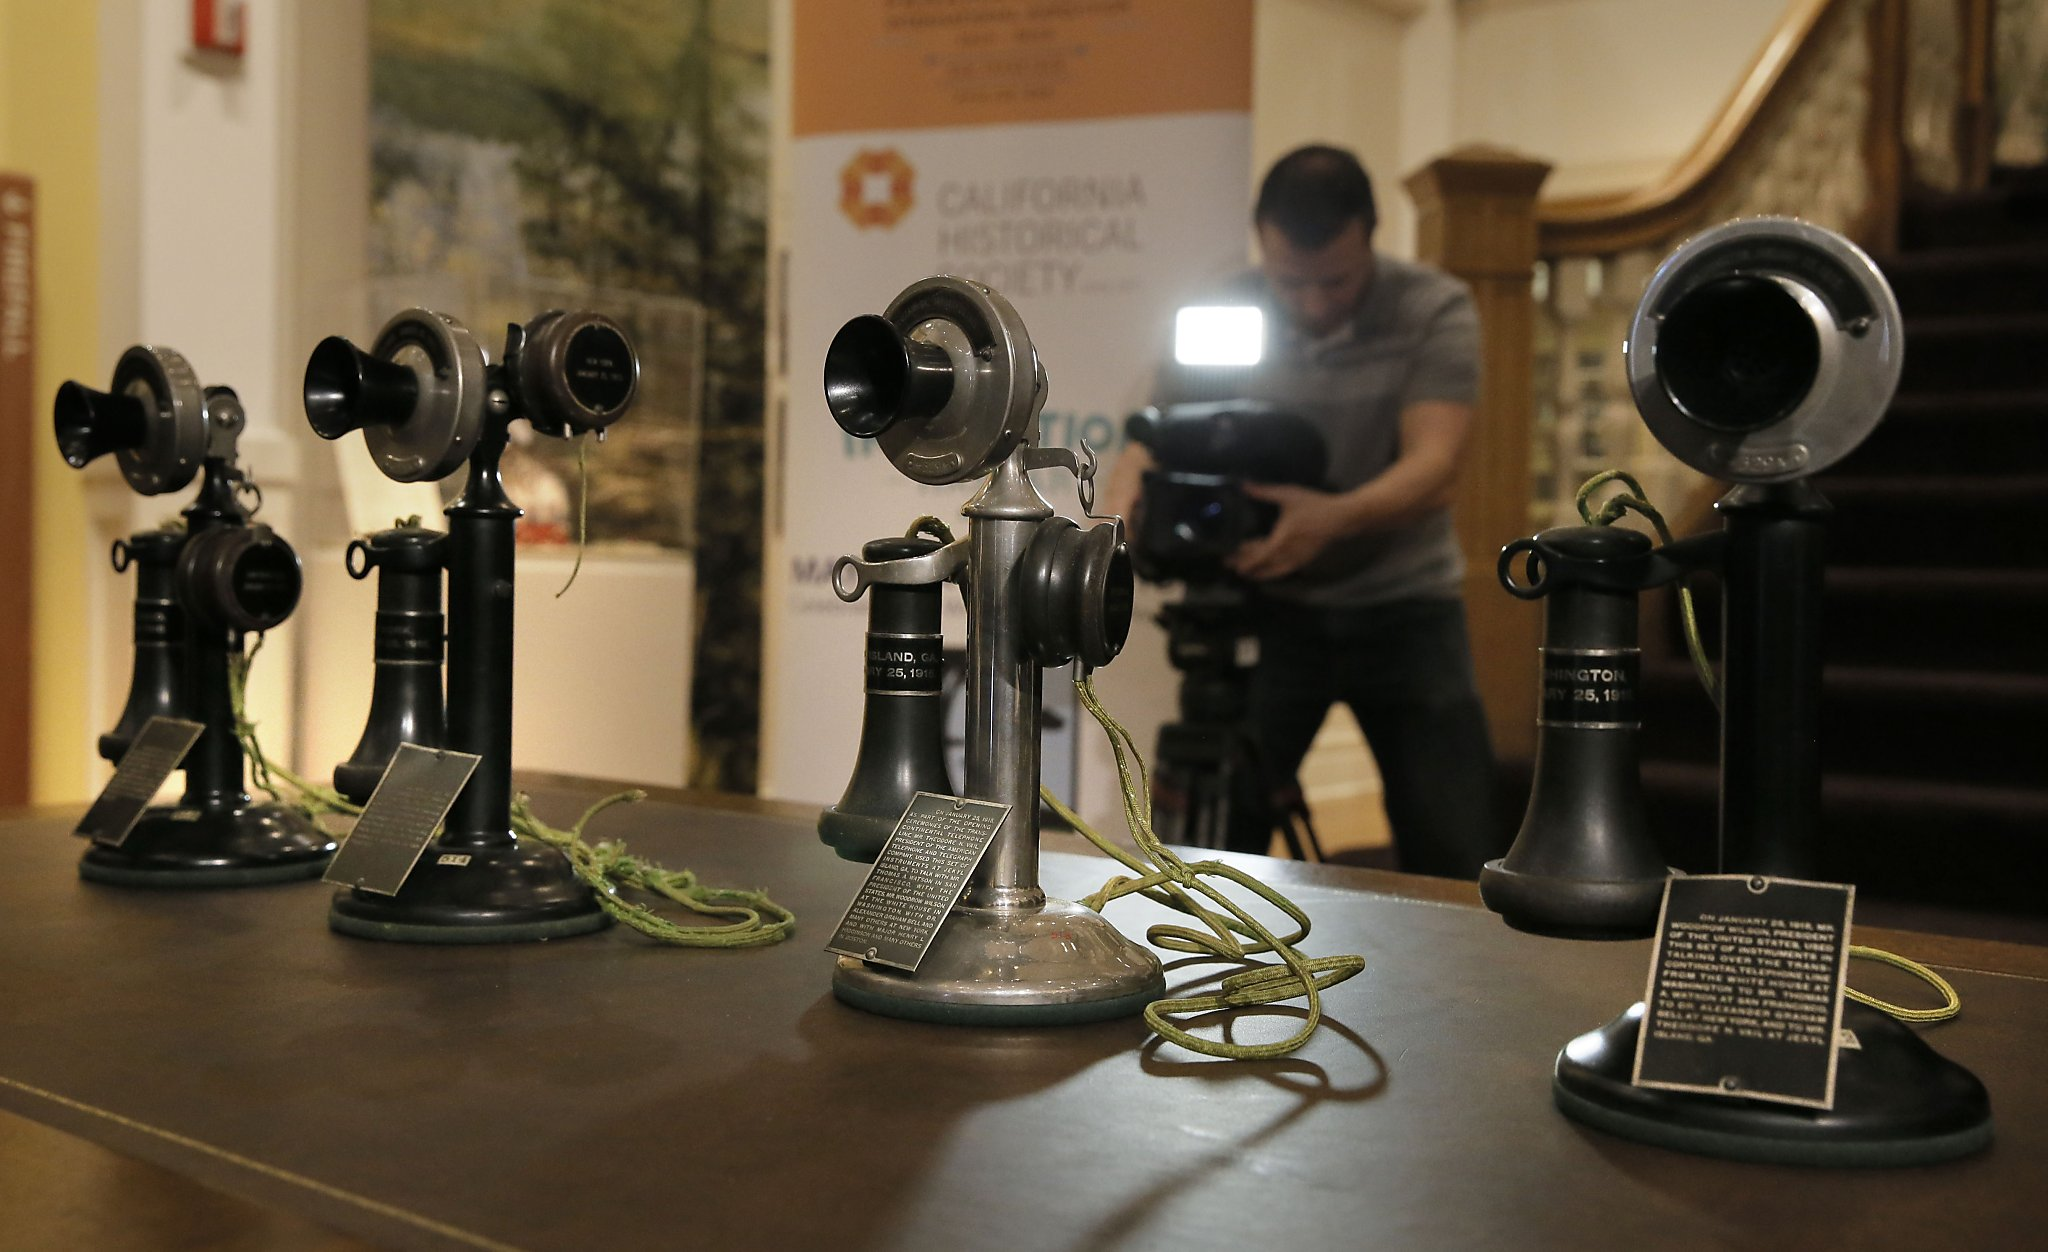 Historic Phones Used In Early Transcontinental Call Shown